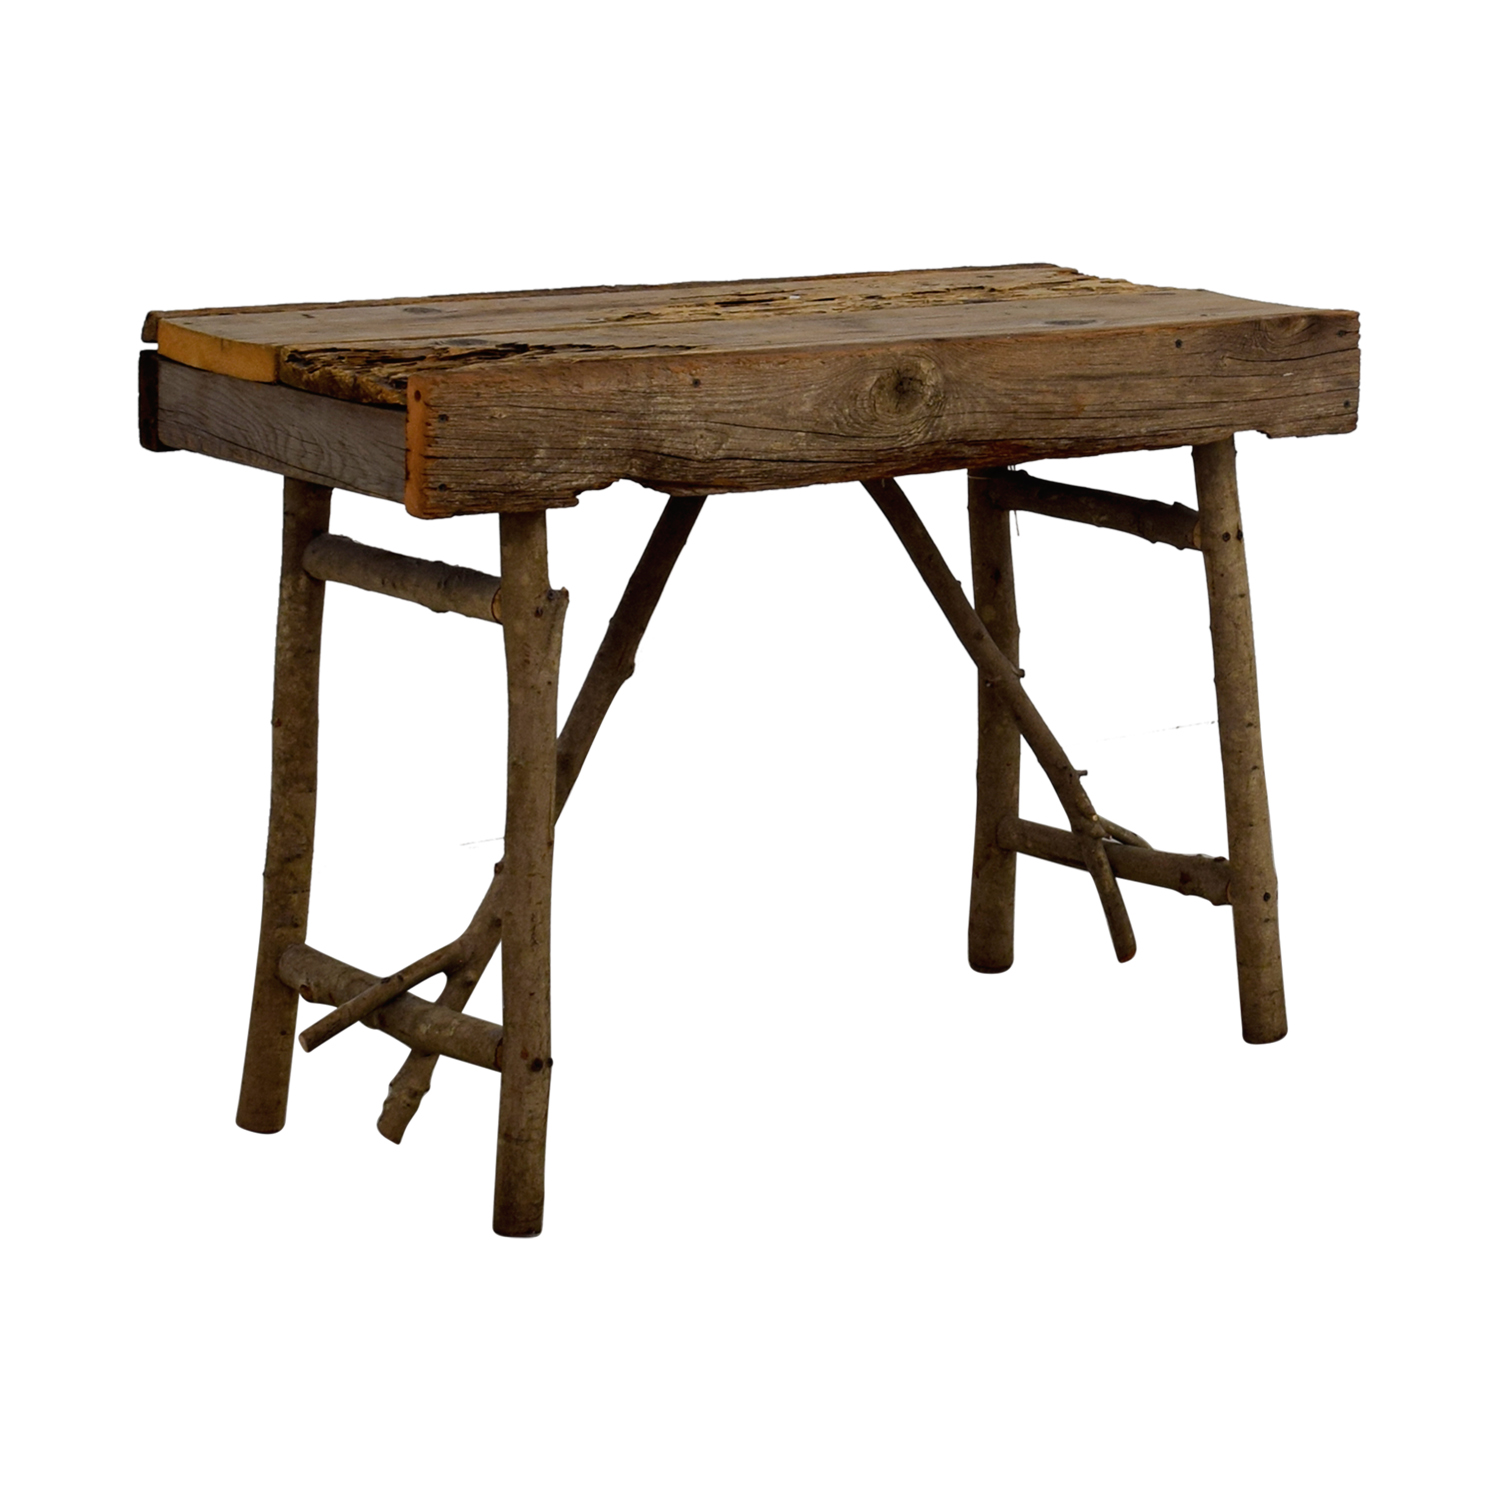 ... Pier 1 Imports Pier 1 Imports Rustic Wood TV Table For Sale ...